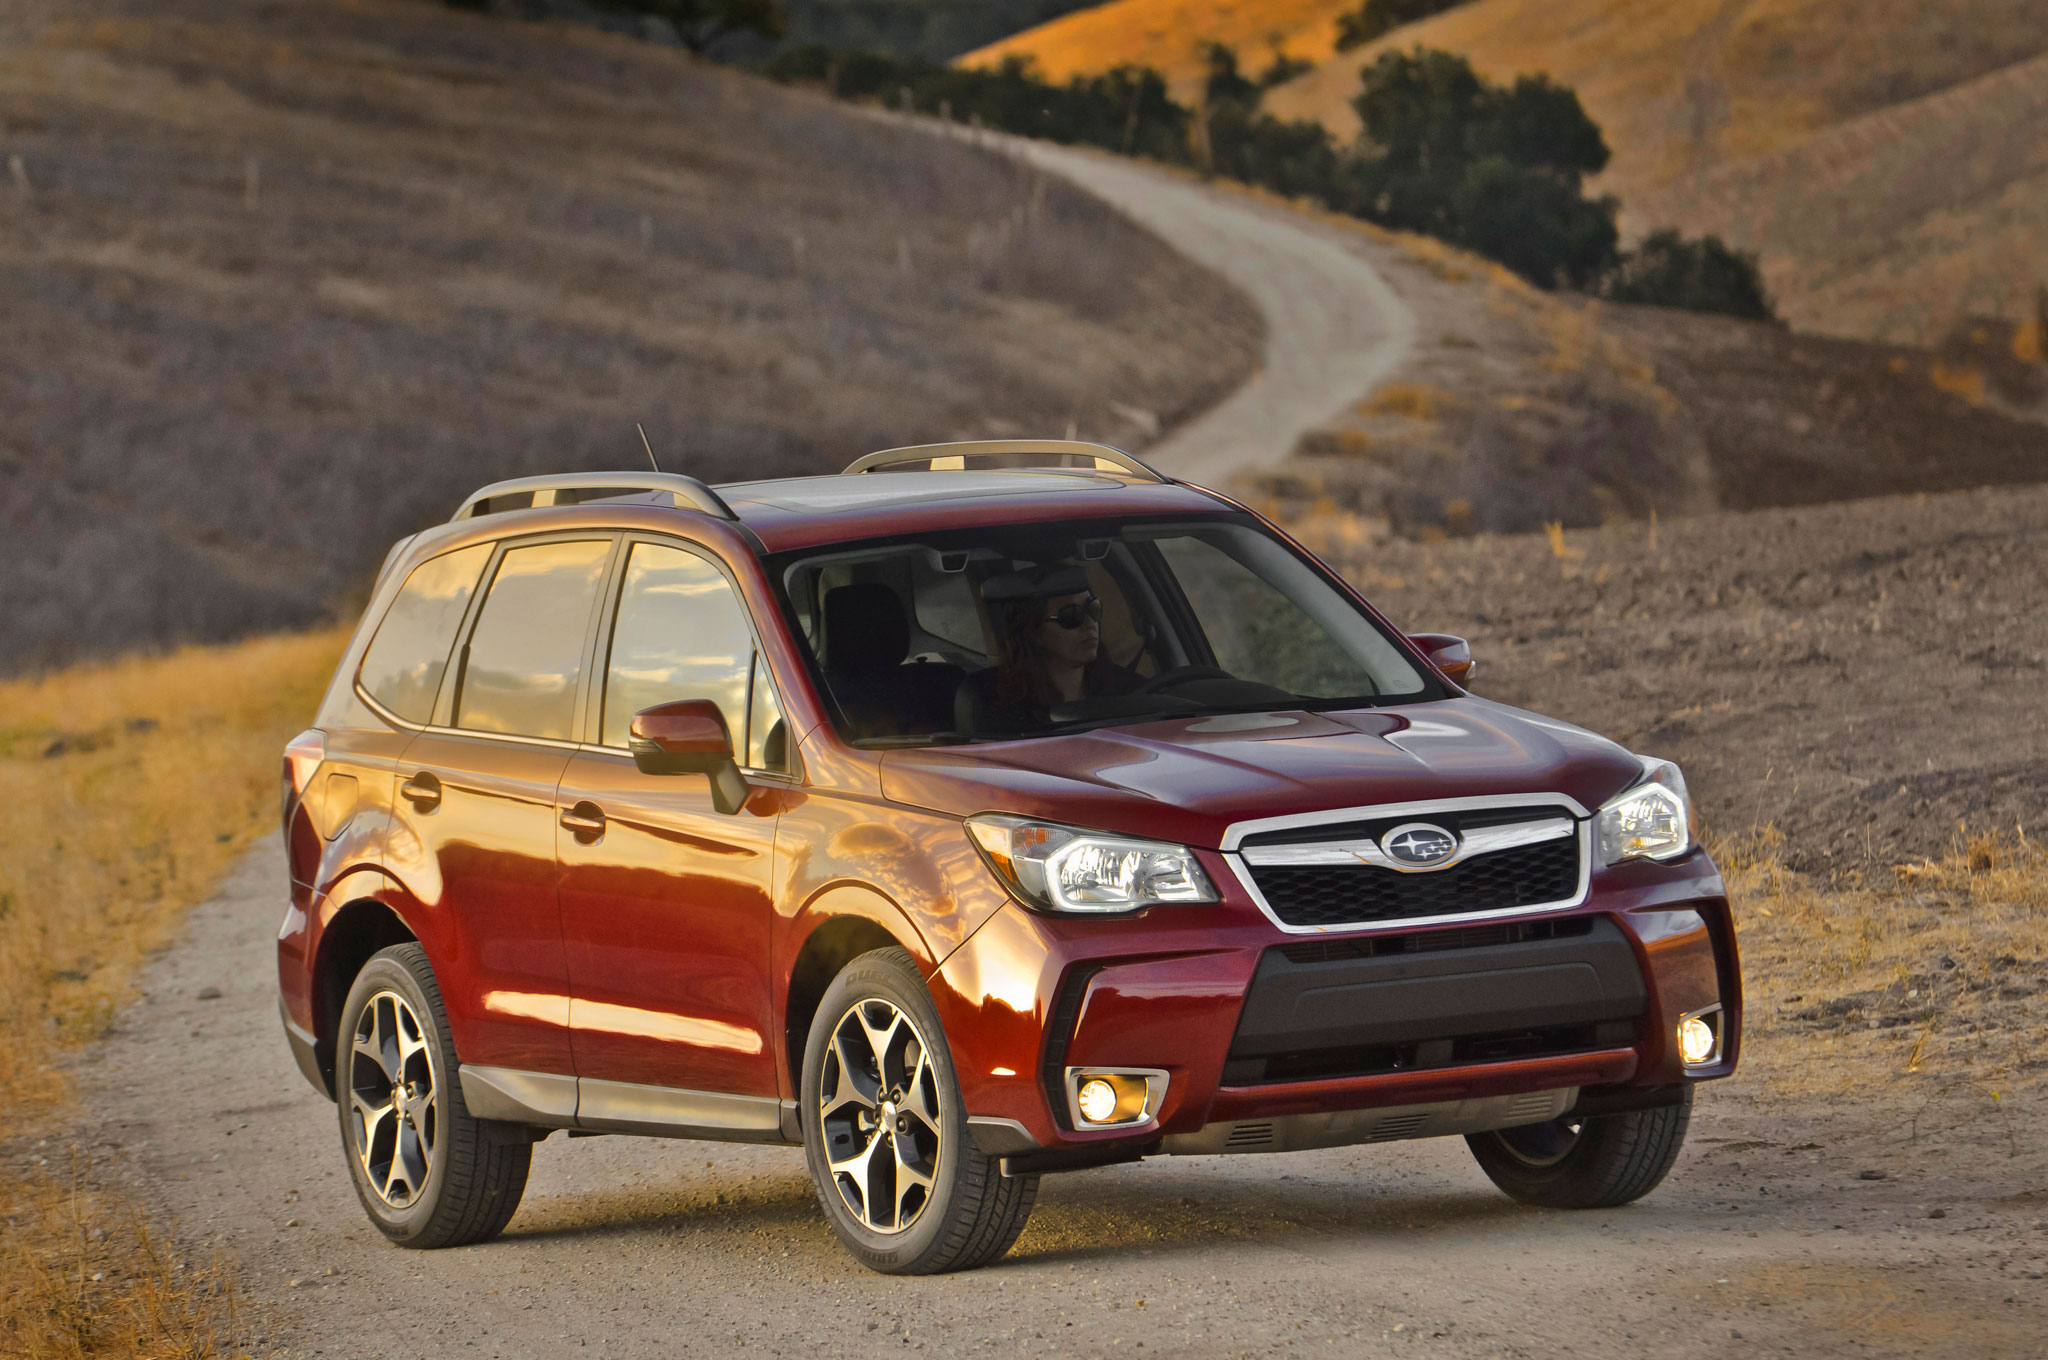 2014 Subaru Forester Front Right Side View1